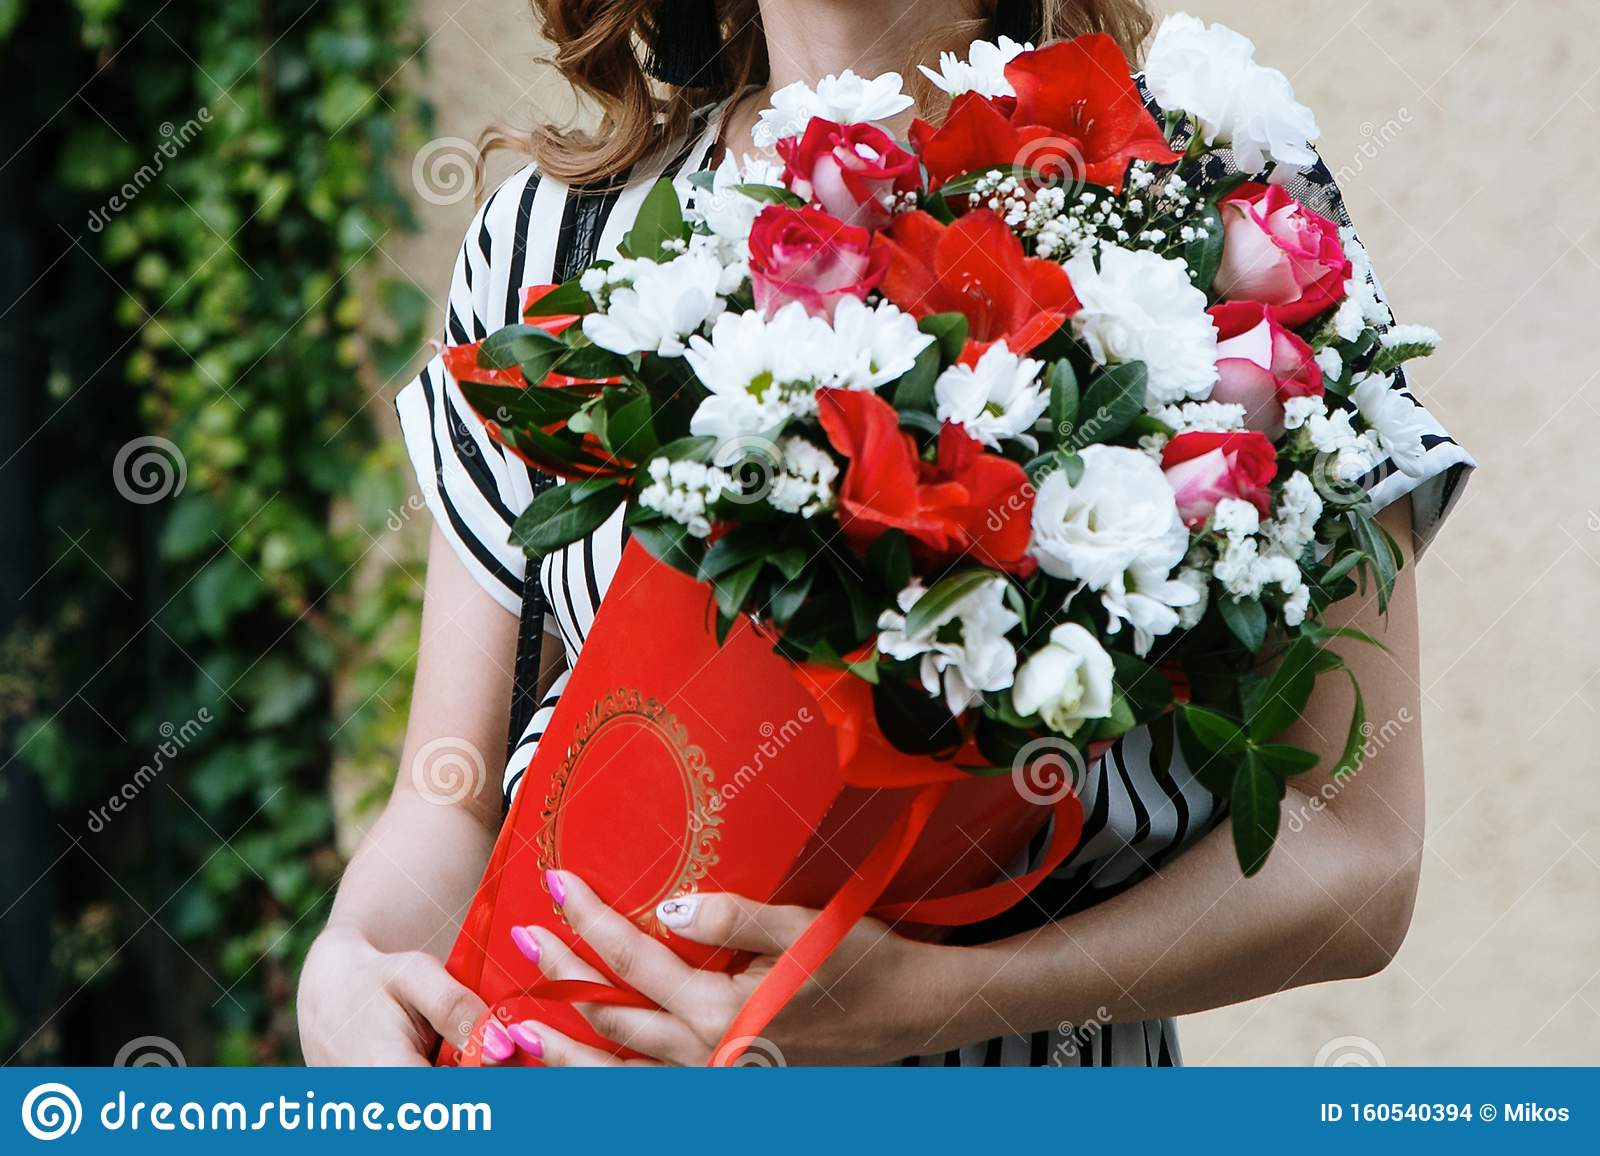 Nice Bouquet In The Hands Stock Photo Image Of Beauty 160540394